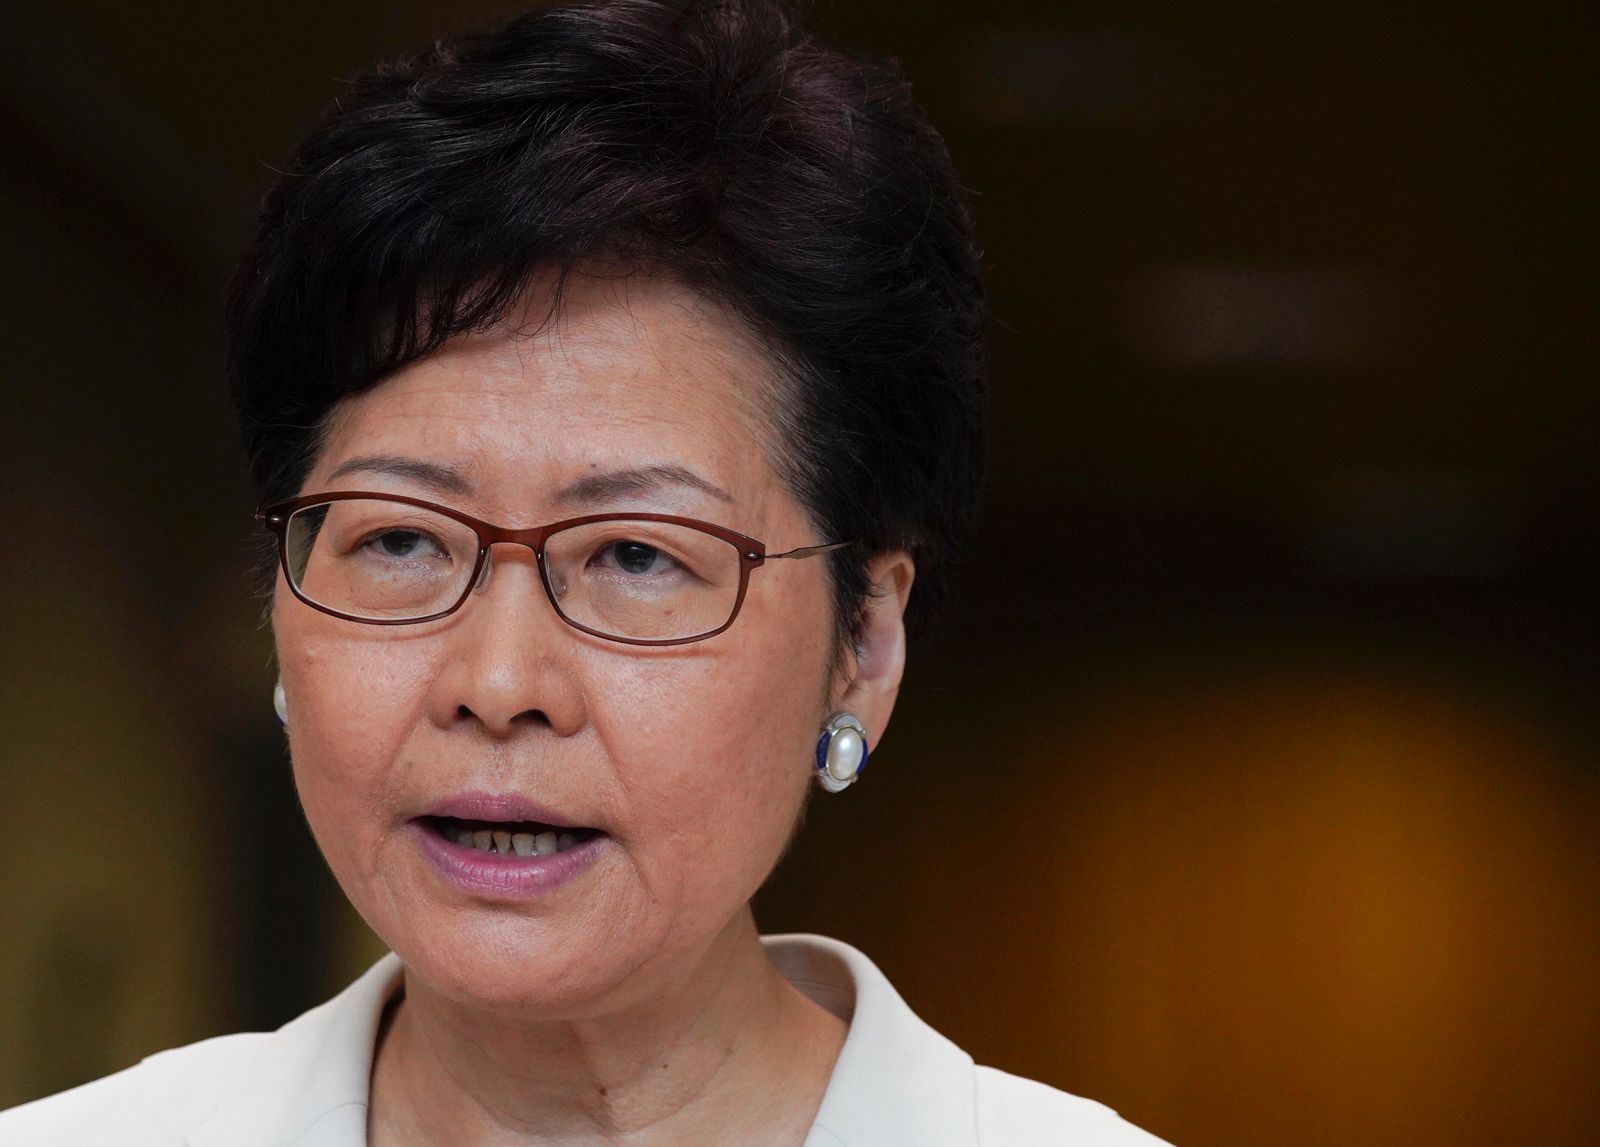 Hong Kong Chief Executive Carrie Lam speaks to reporters during a press conference at the government building in Hong Kong, Tuesday, Sept. 17, 2019. (AP Photo/Vincent Yu)